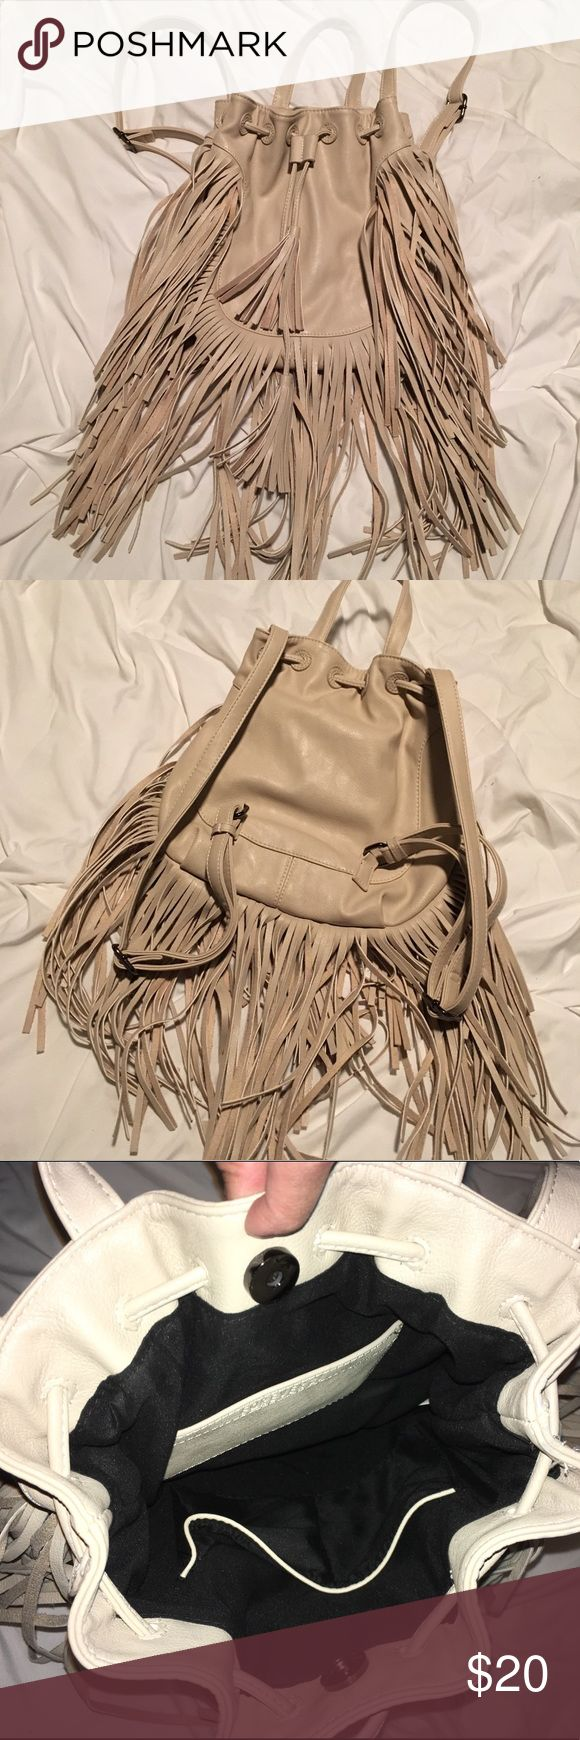 Fringe Mini Backpack Mini backpack! Perfect for festivals, amusement parks, outings, etc. Perfect condition! Magnetic closure. Last picture is me wearing. (Sorry it's only a side view lol) Forever 21 Bags Backpacks